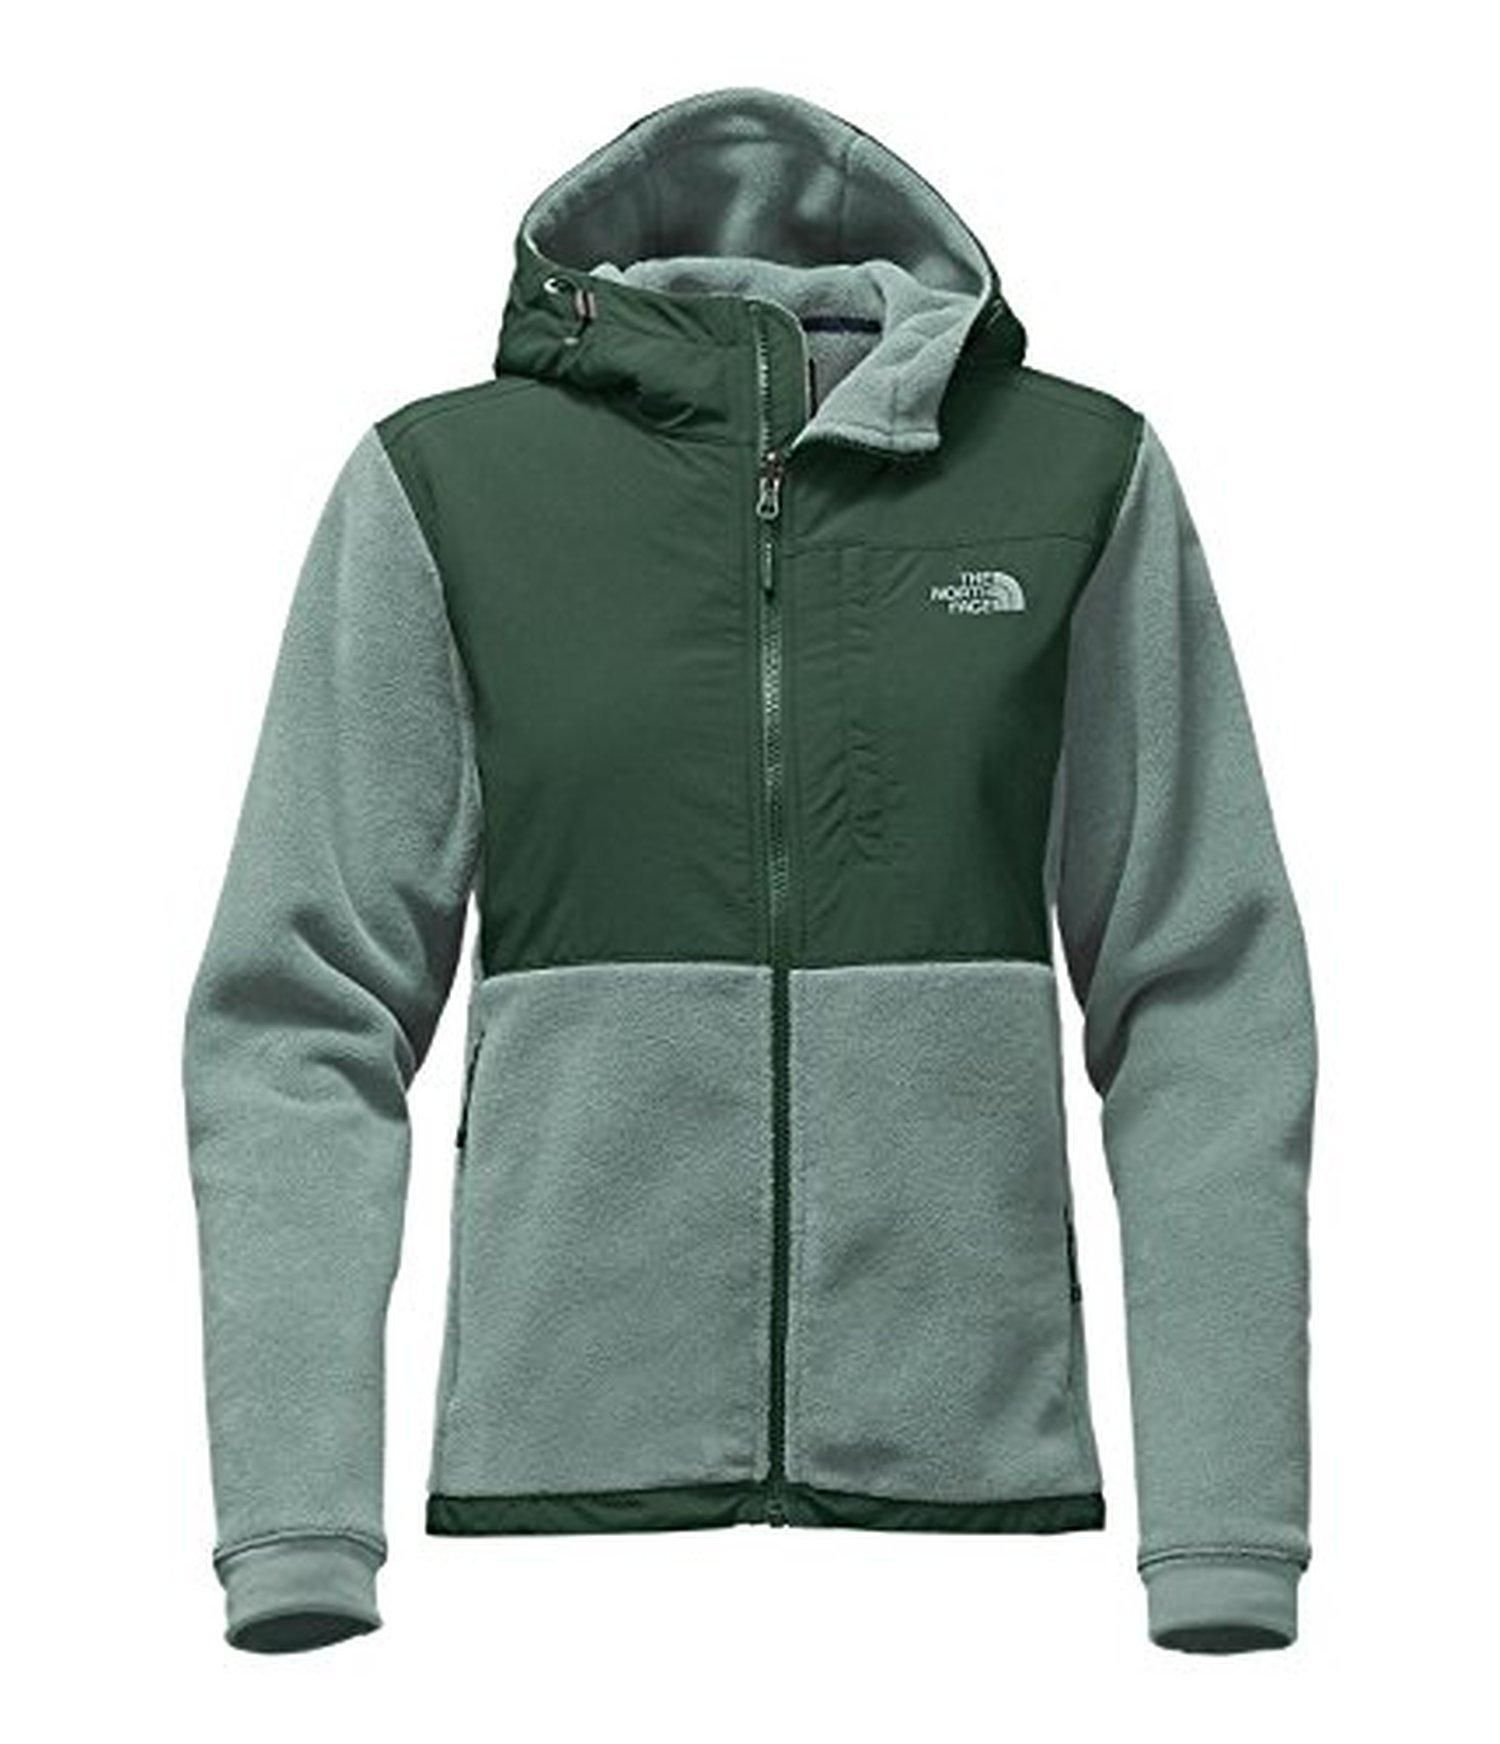 The North Face Women S Denali Hoodie Large Balsam Green Darkest Spruce North Face Denali Hoodie The North Face Fleece Jacket Womens [ 1744 x 1500 Pixel ]